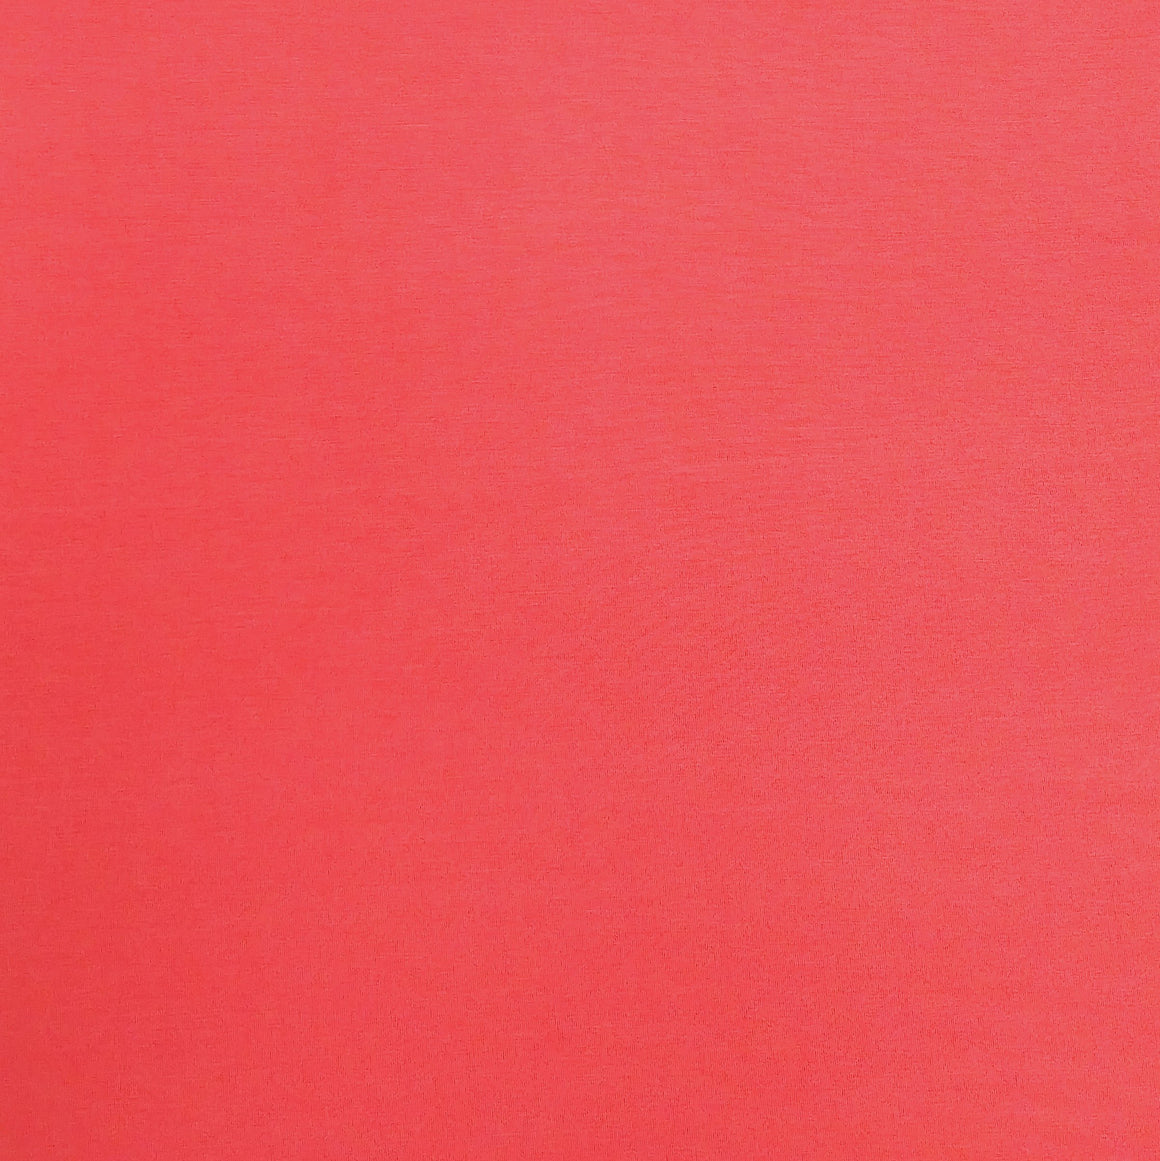 Bright Coral Modal Spandex Jersey Knit Fabric - Raspberry Creek Fabrics